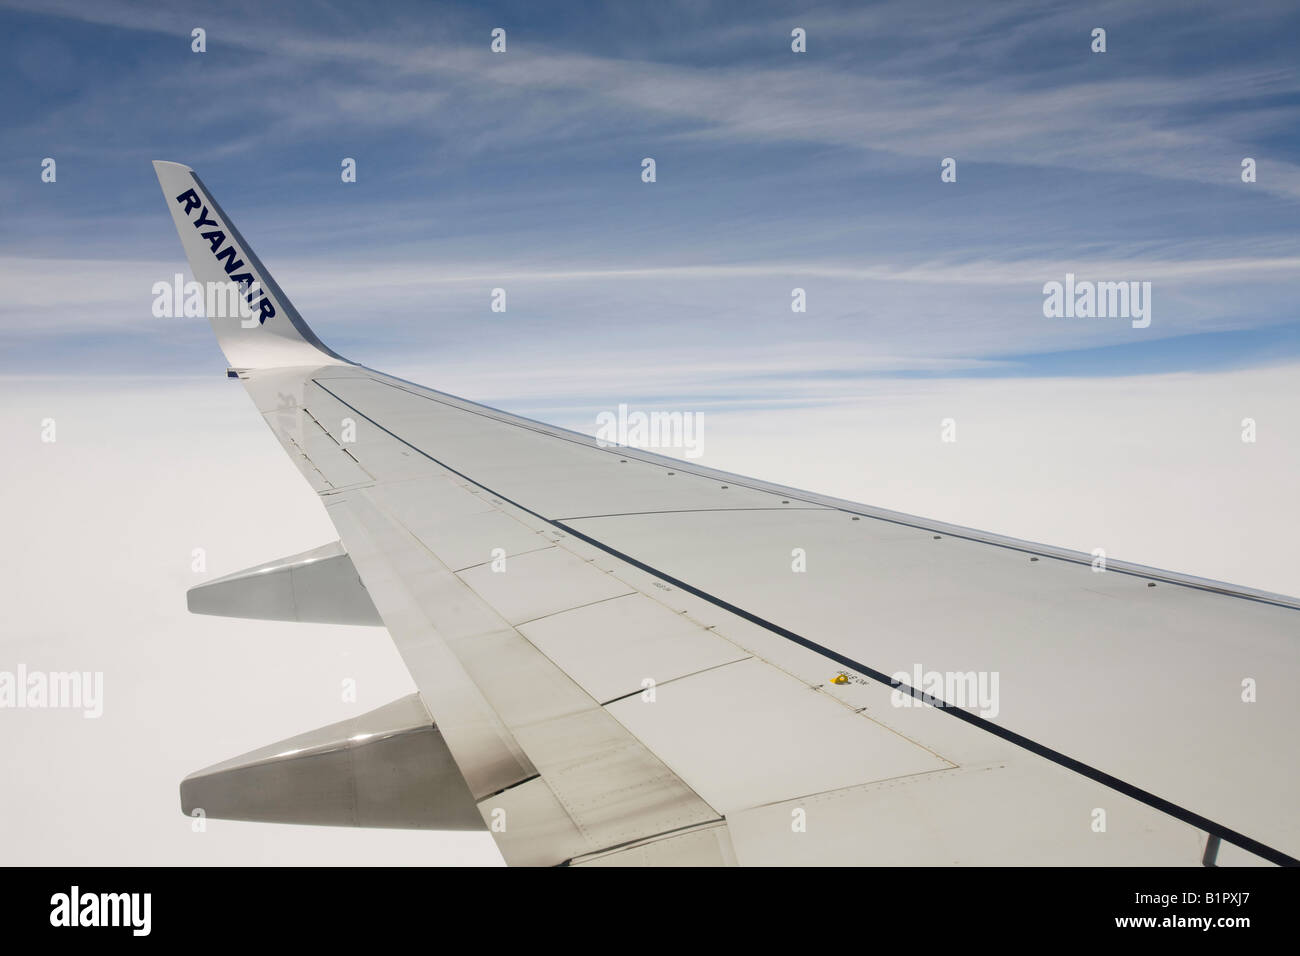 The wing of a Ryanair plane flying over the Alps with vapour trails Stock Photo